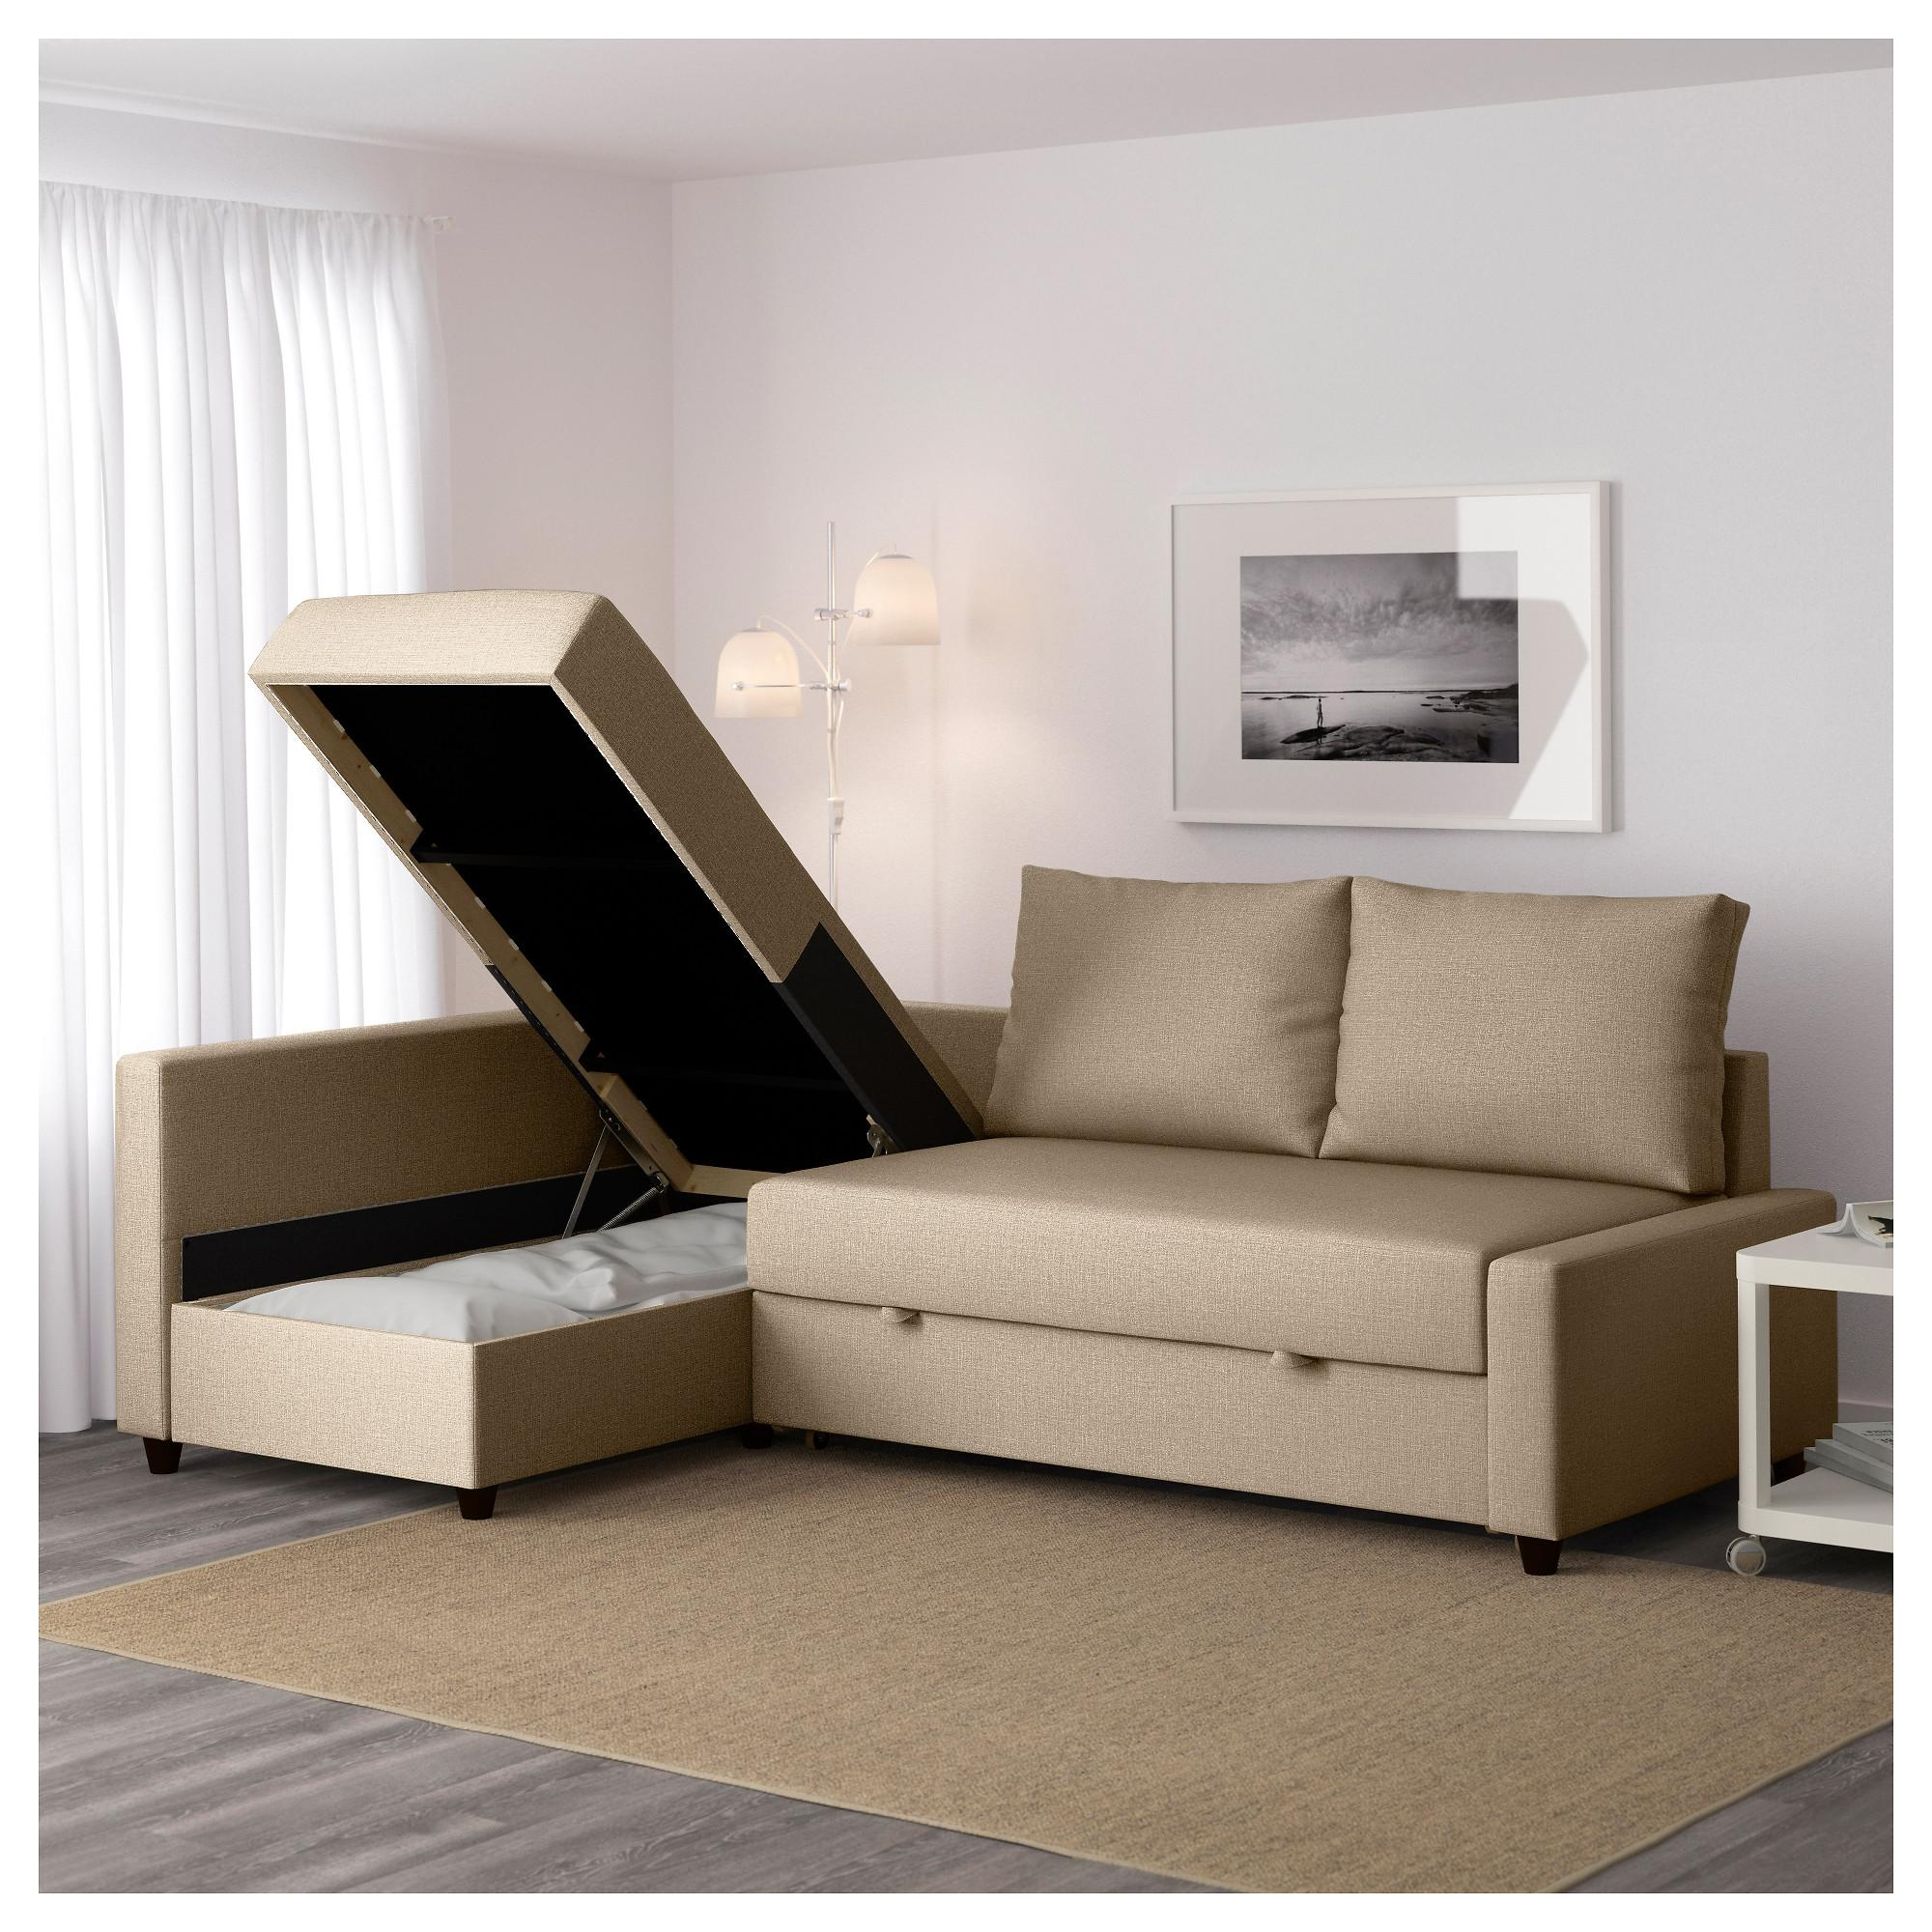 Friheten Sleeper Sectional,3 Seat W/storage – Skiftebo Dark Gray Within Ikea Sectional Sofa Bed (Image 5 of 20)